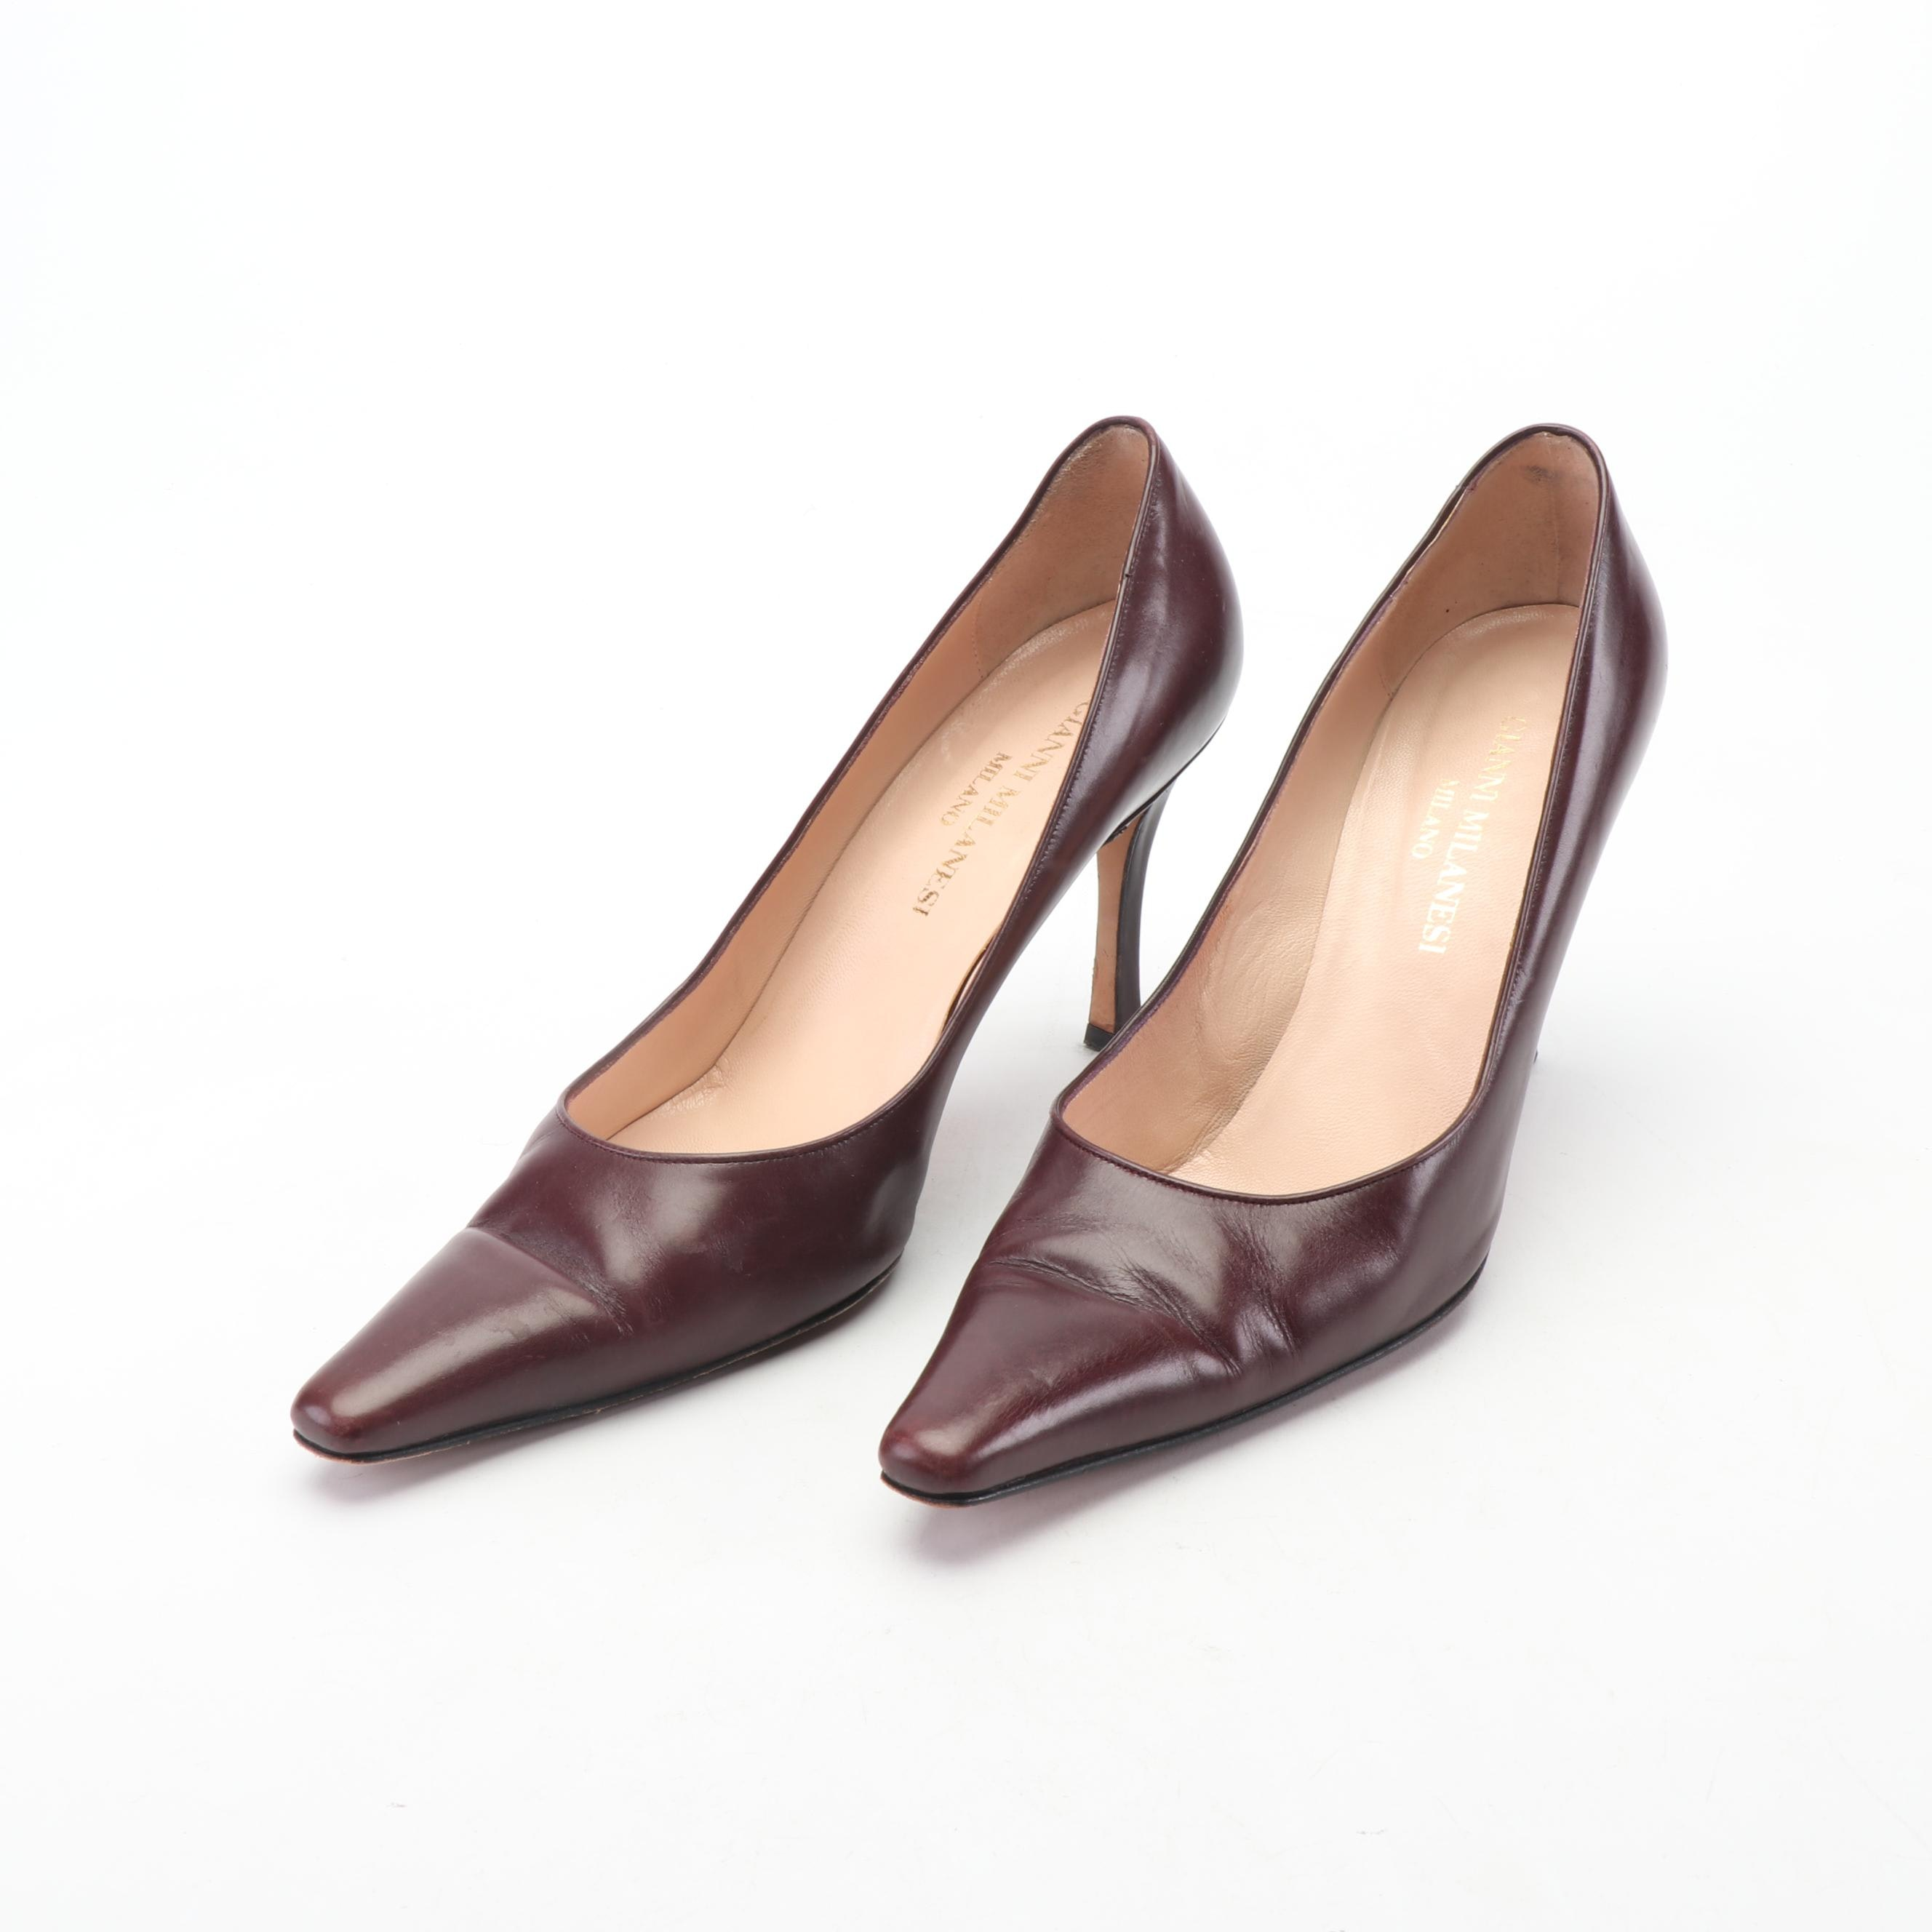 Gianni Milanesi Burgundy Leather Pumps, Made in Italy